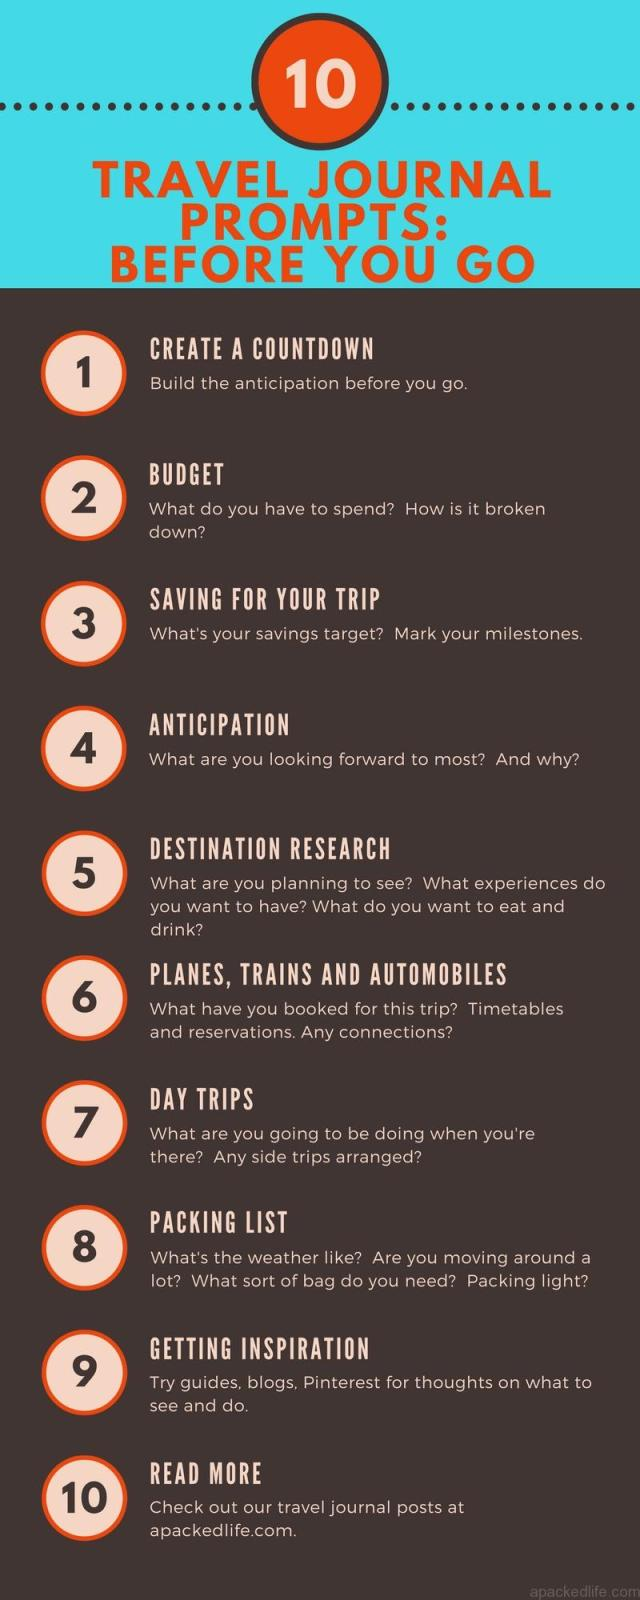 10 Travel Journal Prompts Before You Go